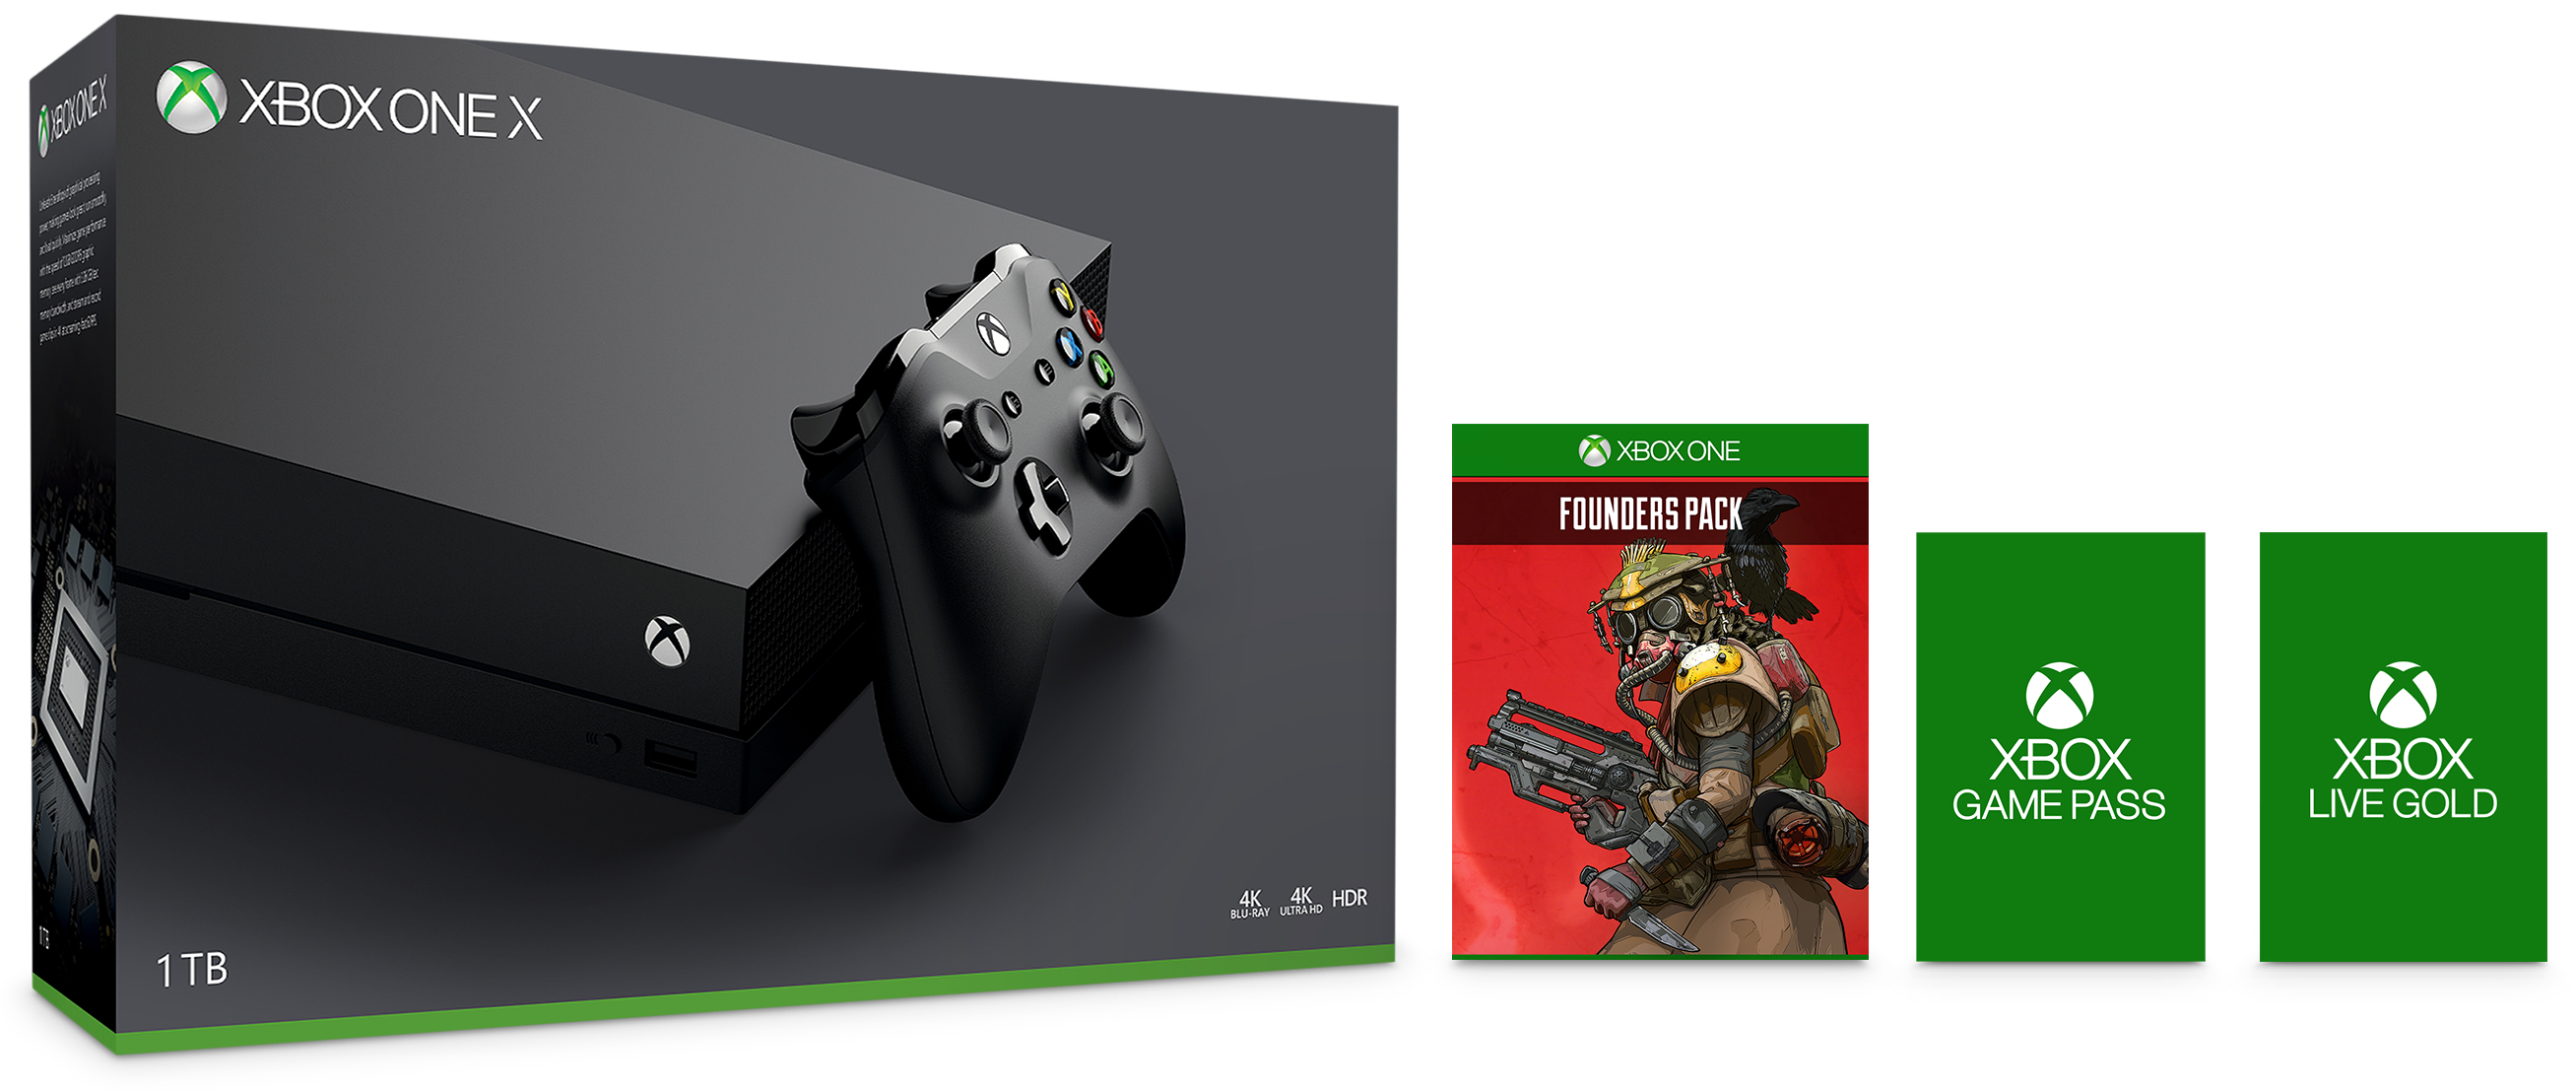 Xbox One X 1TB Console Starter and Apex Legends Founder's Pack